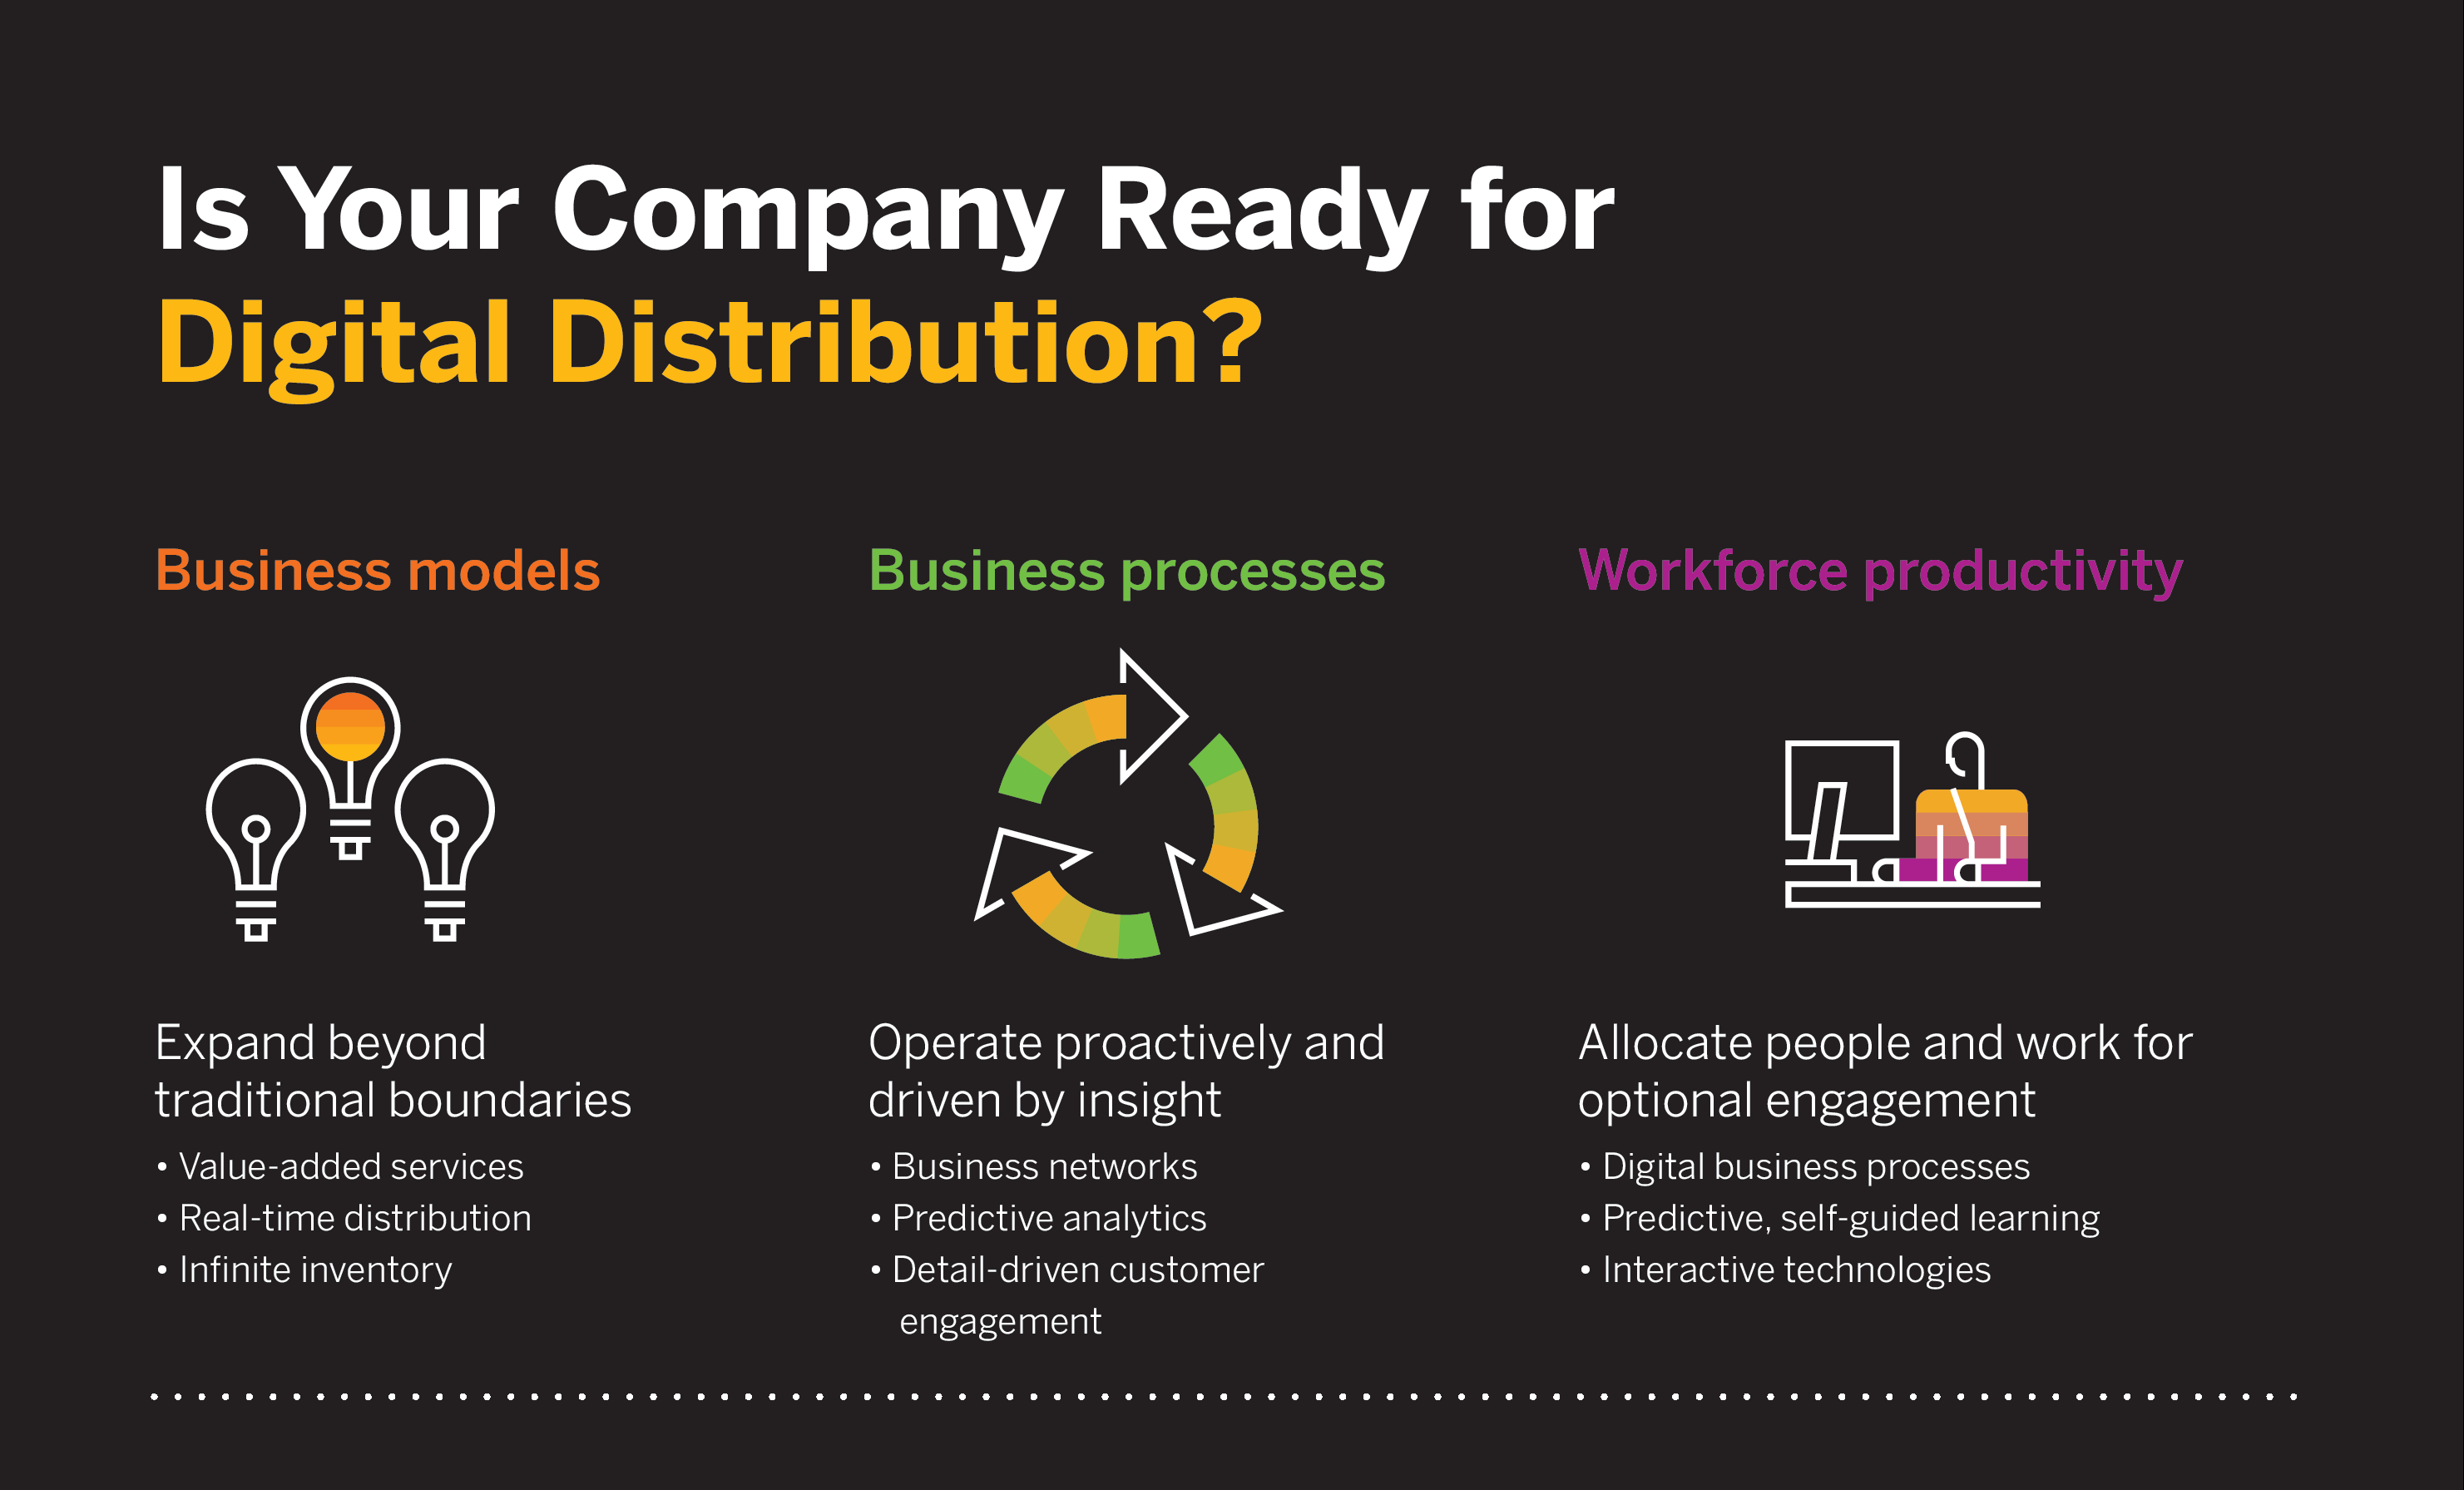 SAP B1-TOFU-Infographic-Are-You-Ready-For-Digital-Distribution